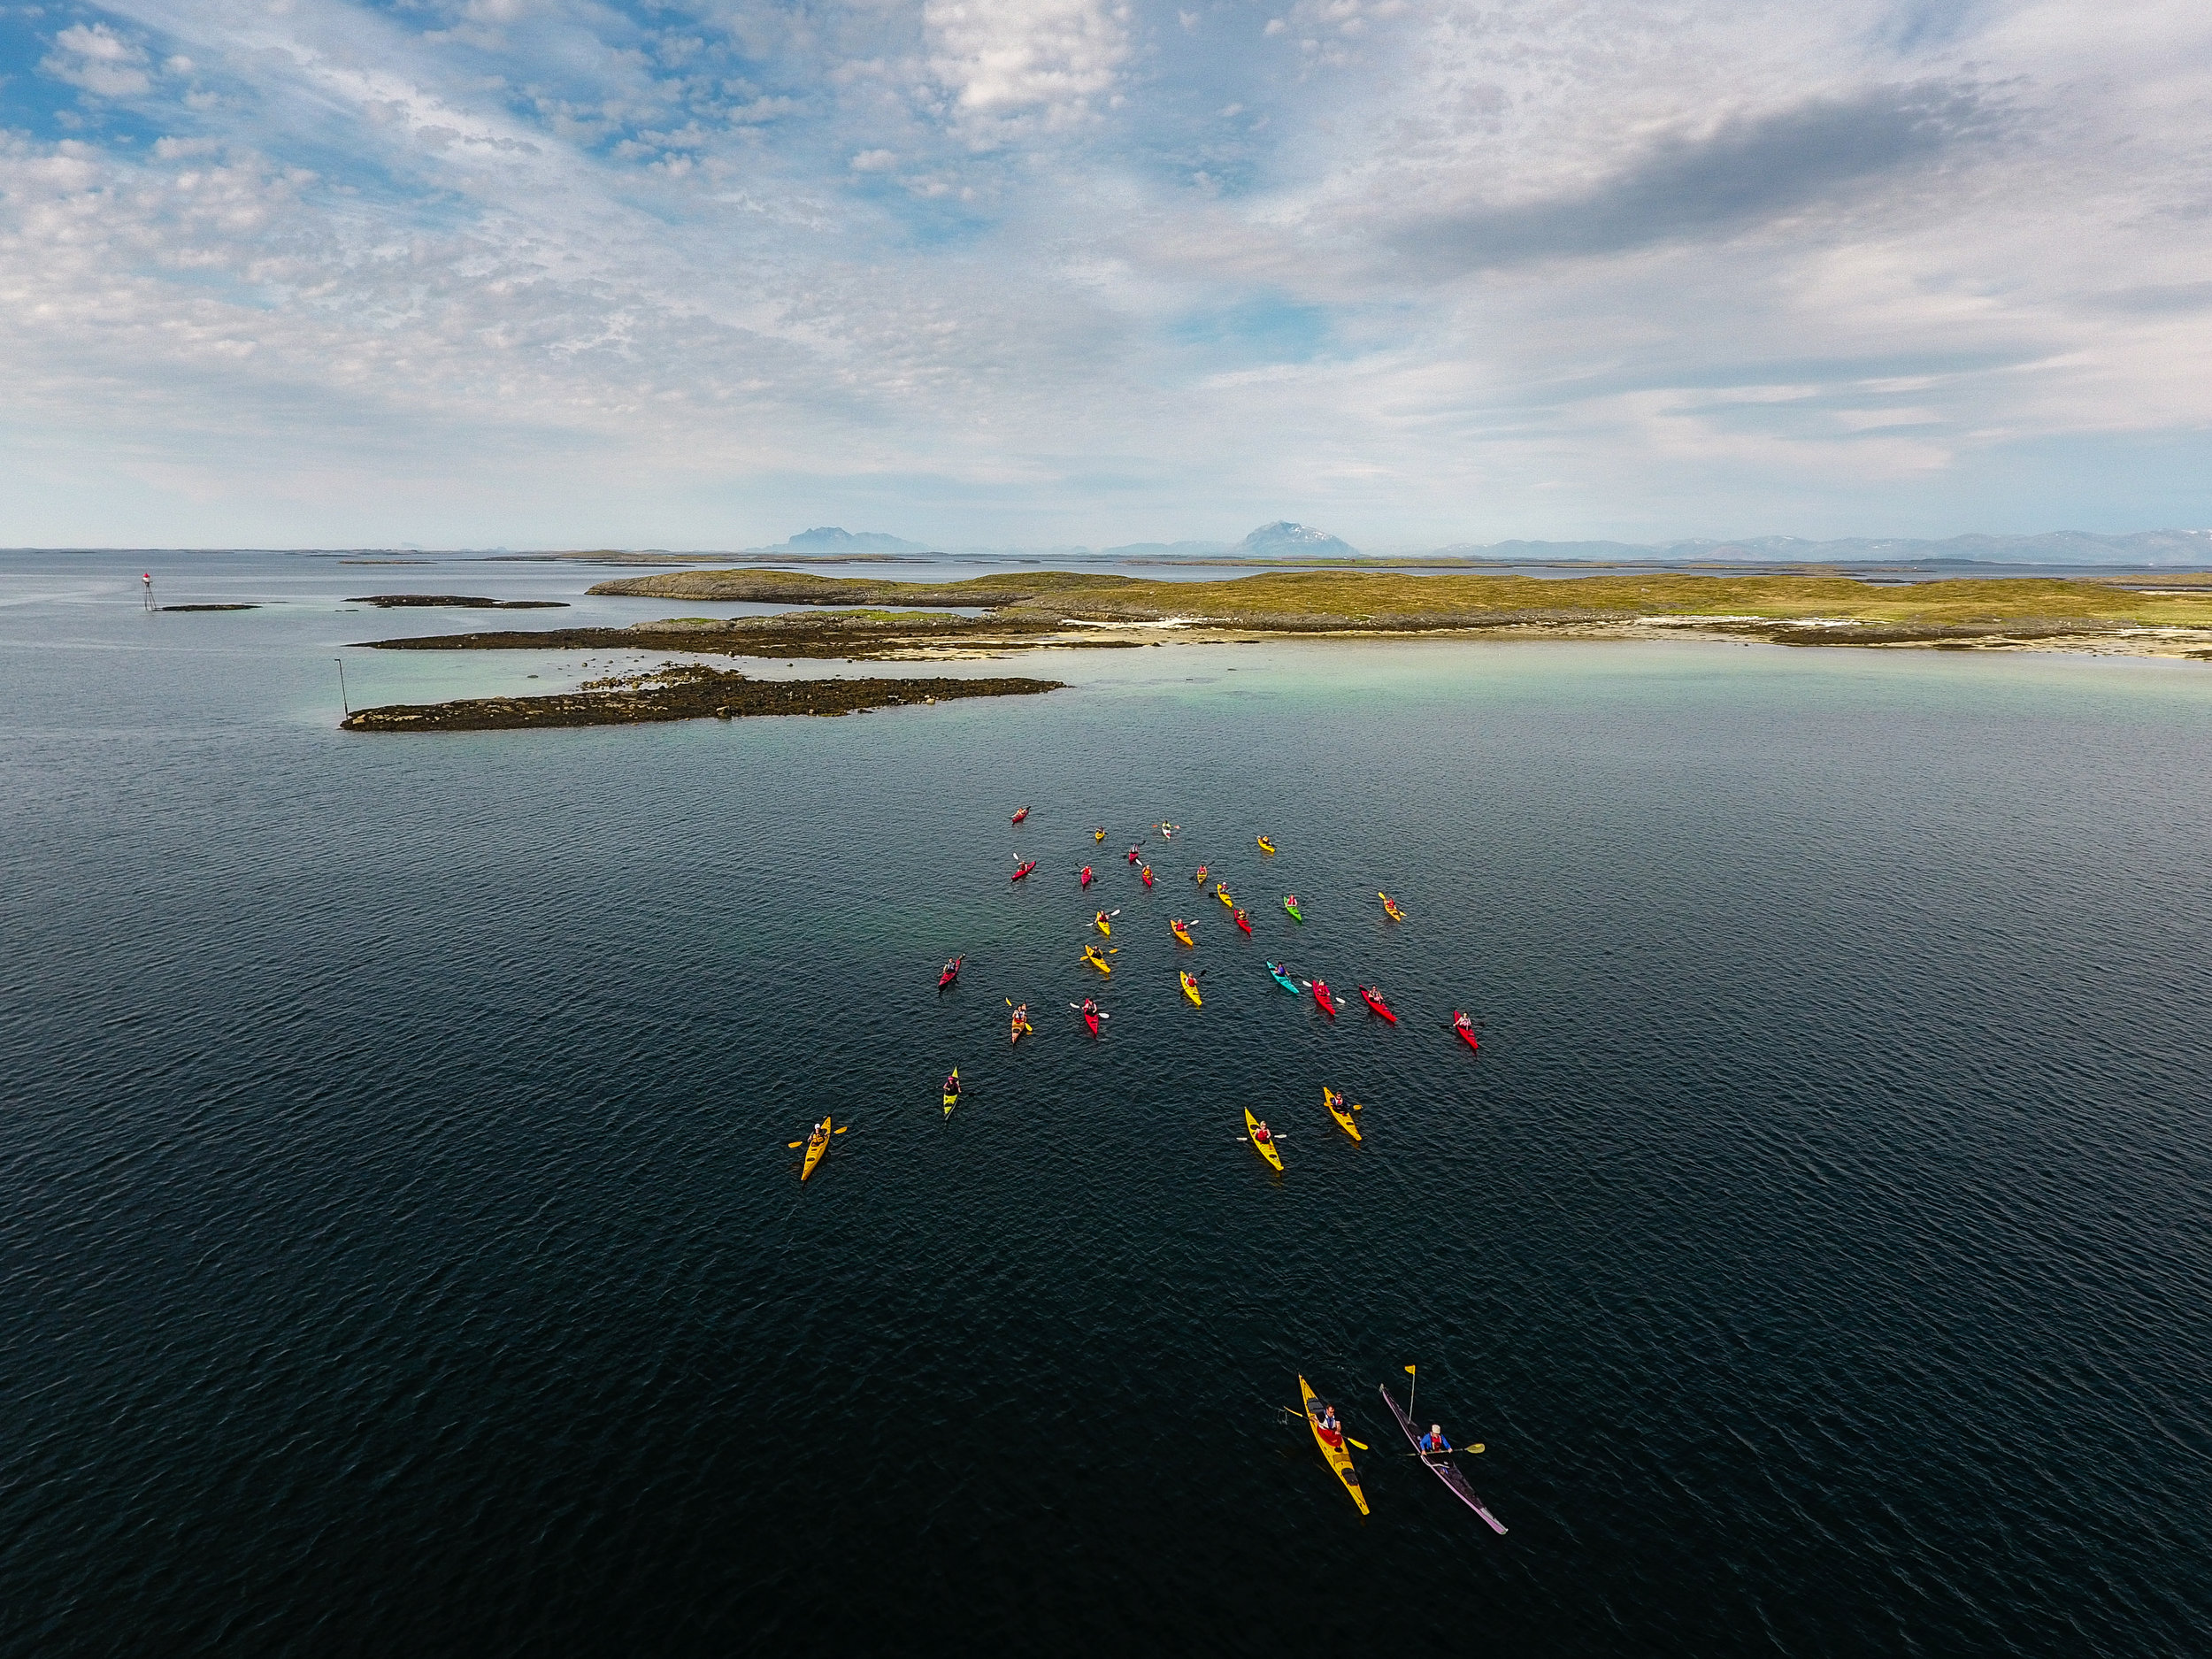 Rent a kayak - If you want to experience the archipelago on your own, kayaking is the way to go. You can rent single and double kayaks and all the equipment you need. We'll also tell you the best places to go.A single kayak is 500 NOK pr day or 2000 NOK for a week. A double kayak is 700 NOK a day or 3800 NOK a week.